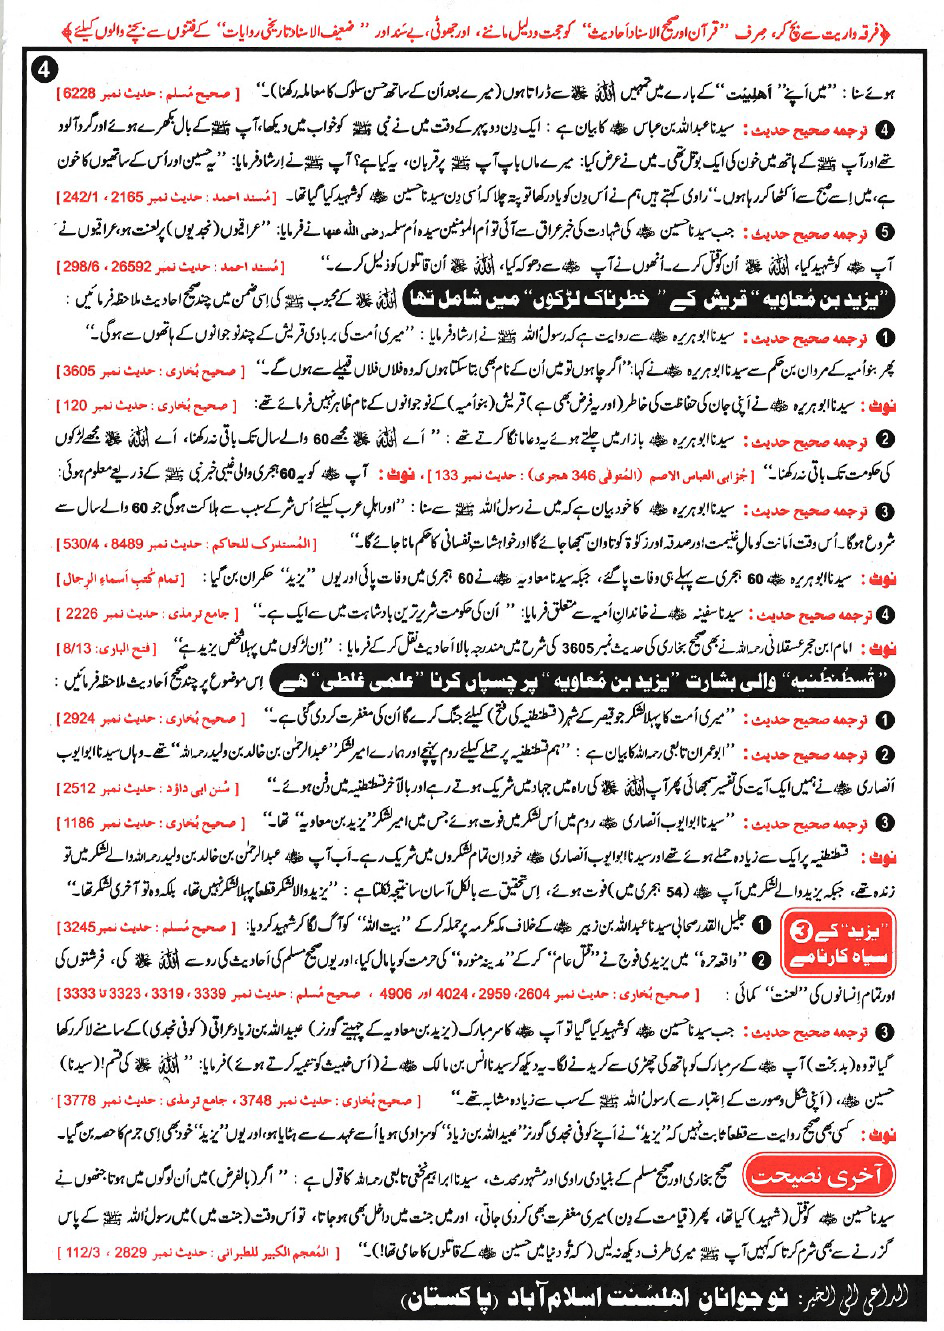 essay on myself in arabic language In arabic myself essay about proverbe essayer amour creative phrases for essay writing letter save trees essay in punjabi language graduate admission essay for.